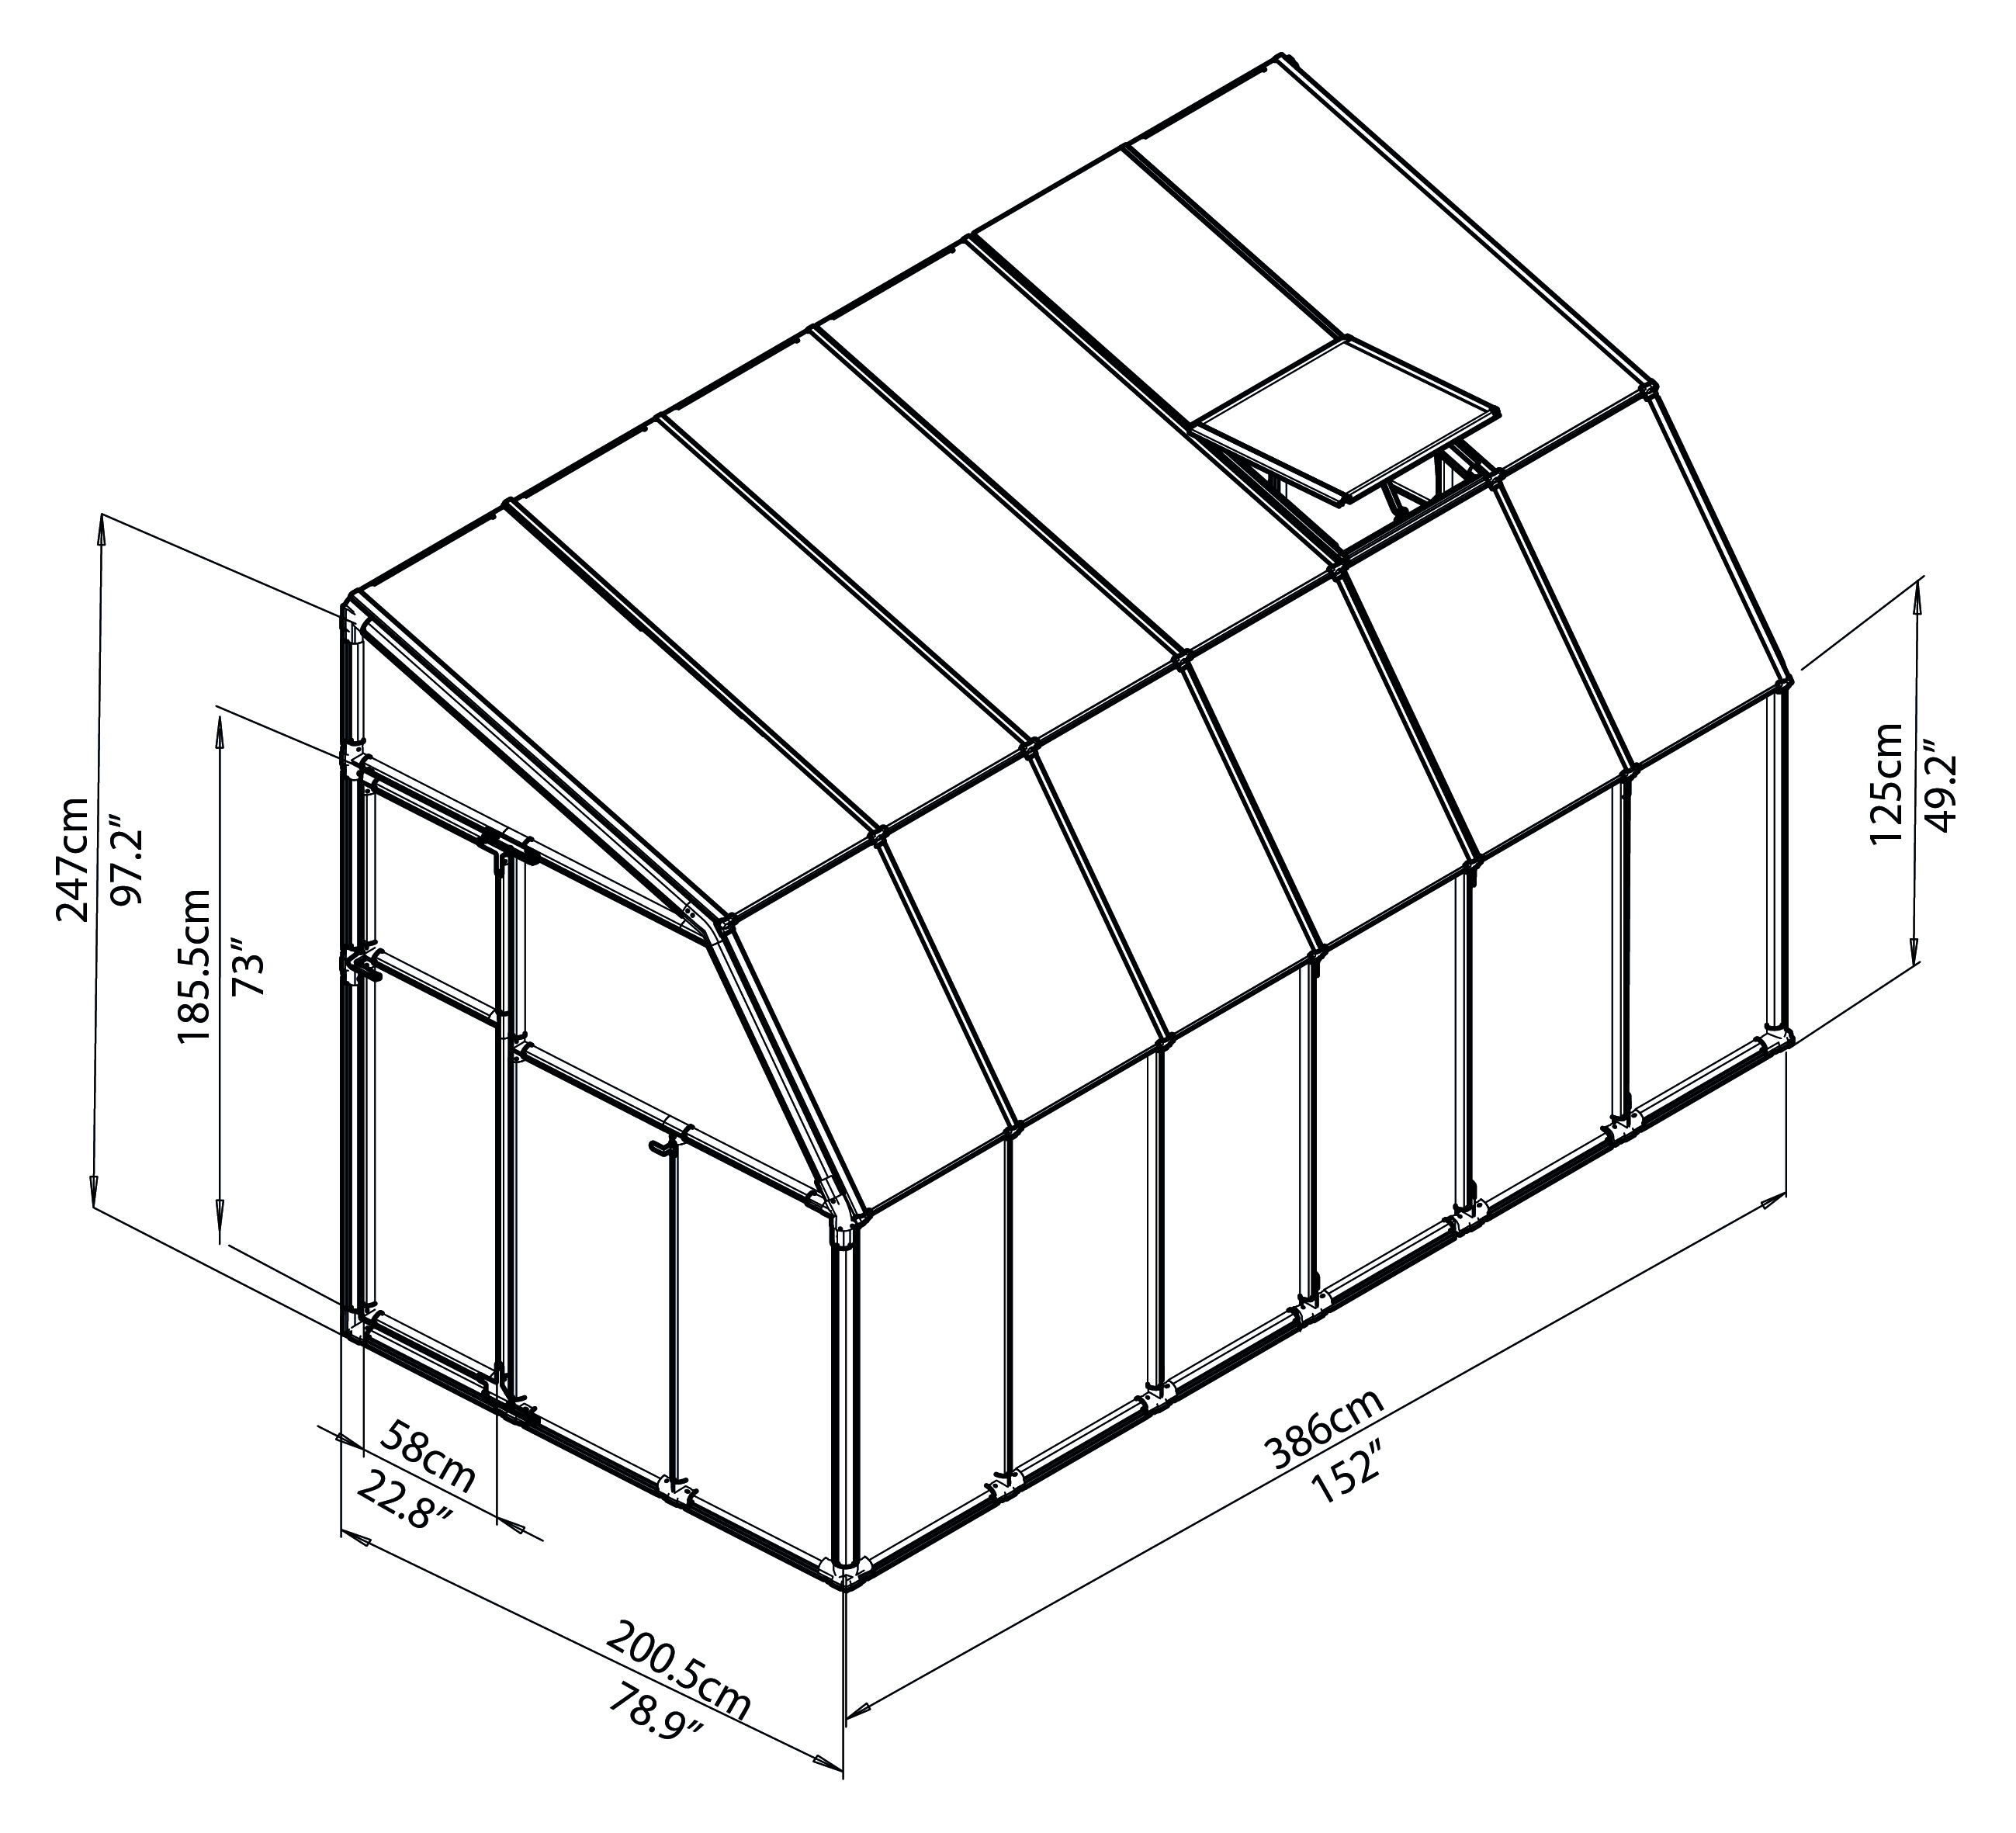 rion-greenhouses-sunroom-sunlounge-6x12-drawing-isoview.jpg